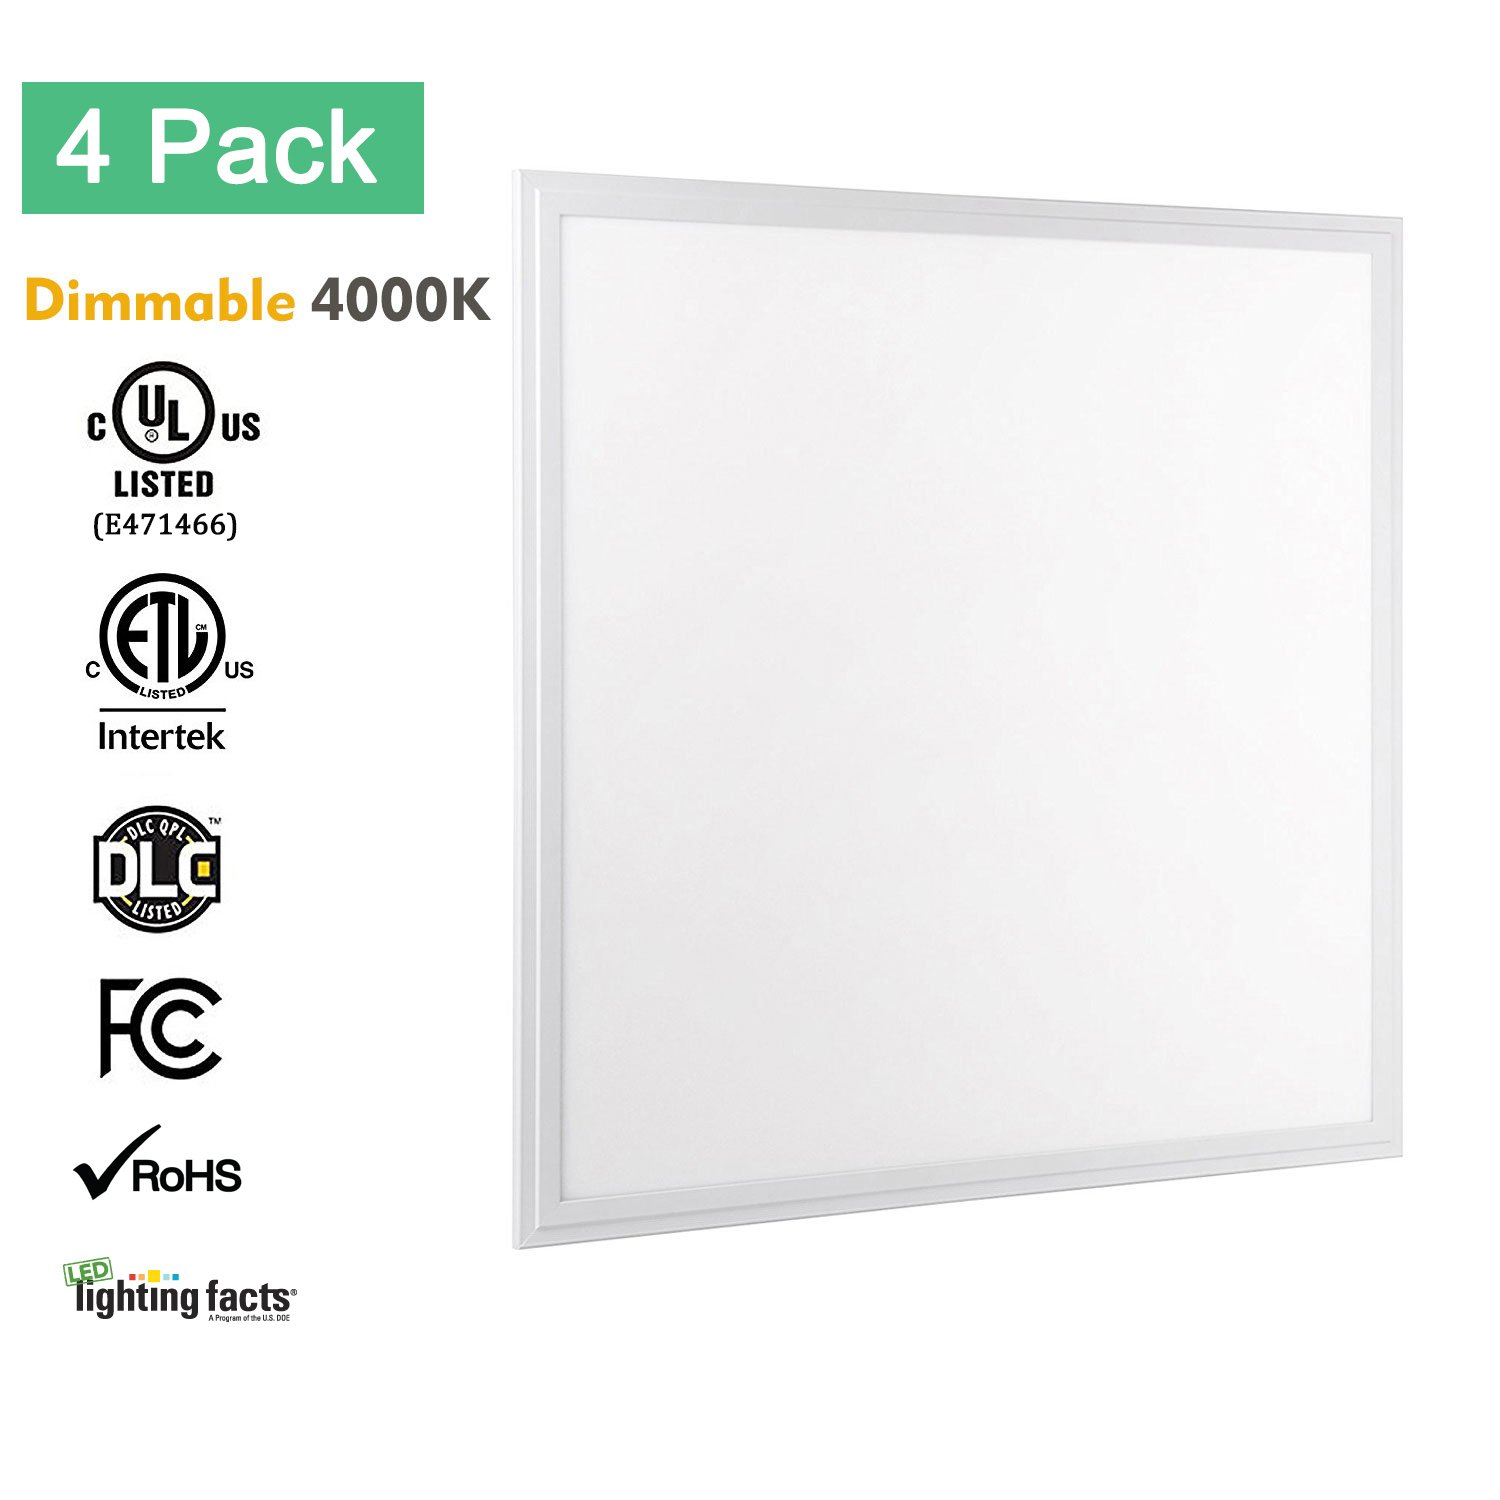 2x2 LED Flat Panel Light, Allsmartlife 4-Pack 2x2 LED Panel Light Dimmable 4000K(Bright White), 0-10V 40W(140W Equivalent) - White Frame, 4147 Lumens, 100-277V - DLC-Qualified and Lighting Facts by AllSmartLife